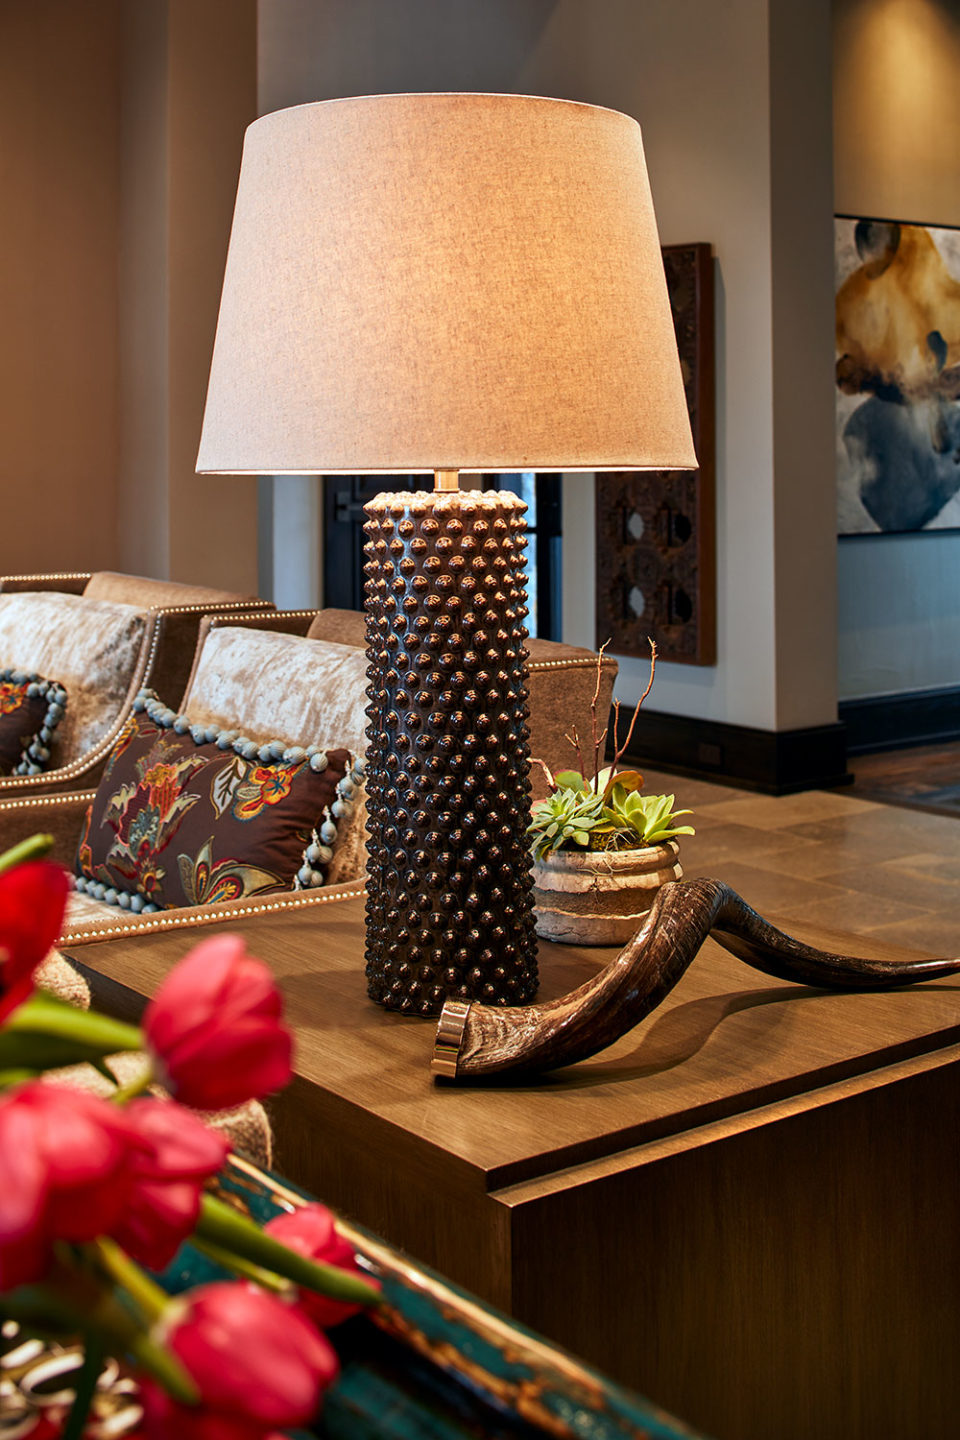 Textural Bronze Table Lamp with Sheep's Horn